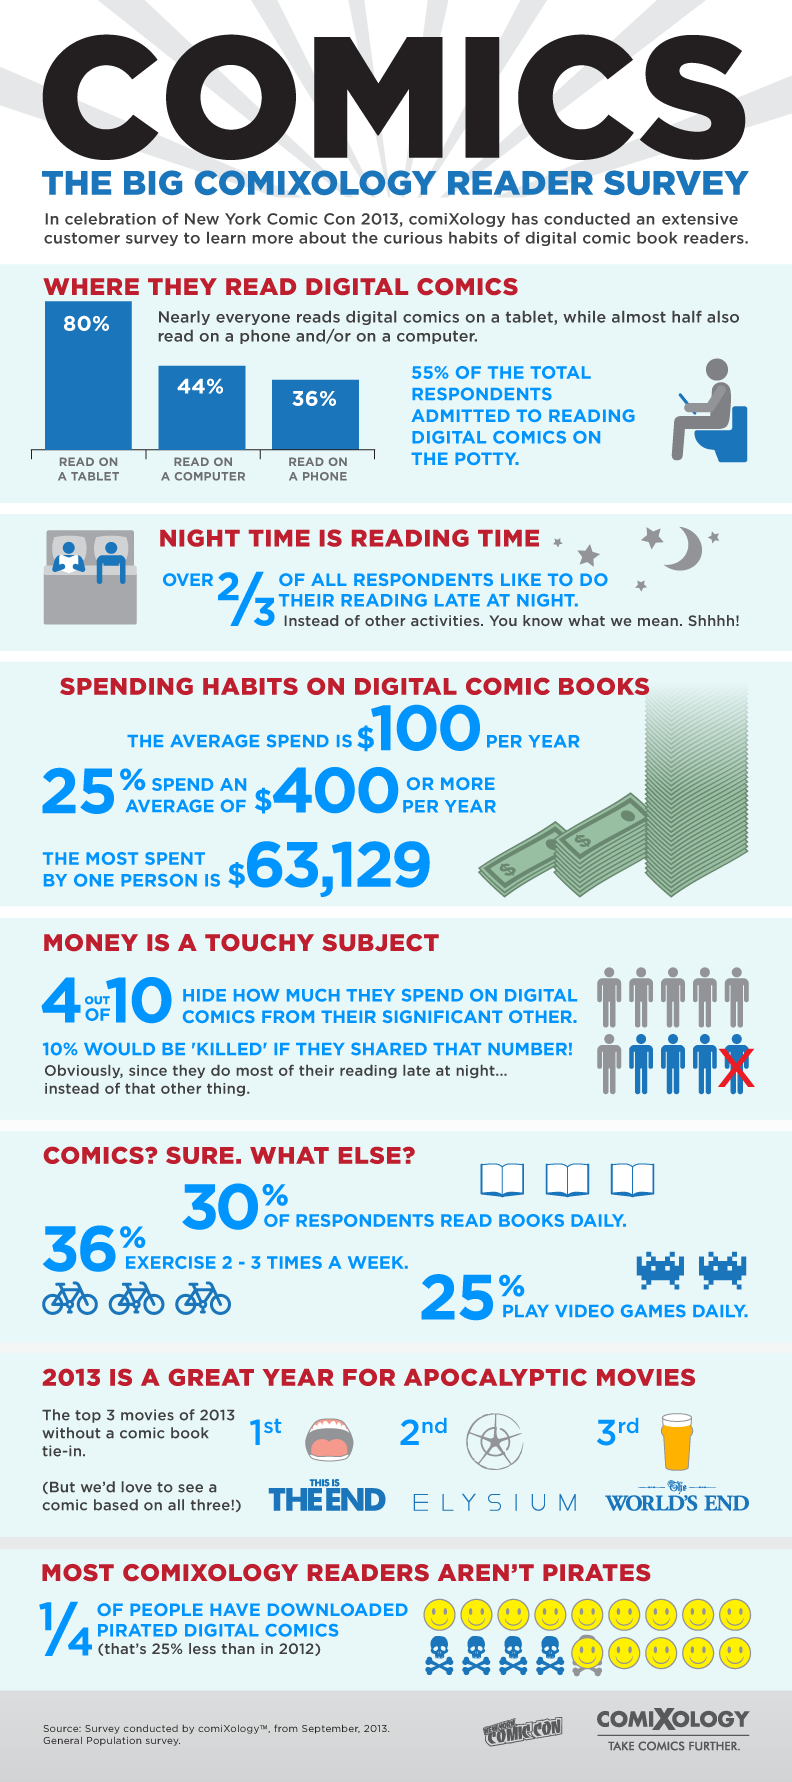 ComiXology Consumer Data infographic